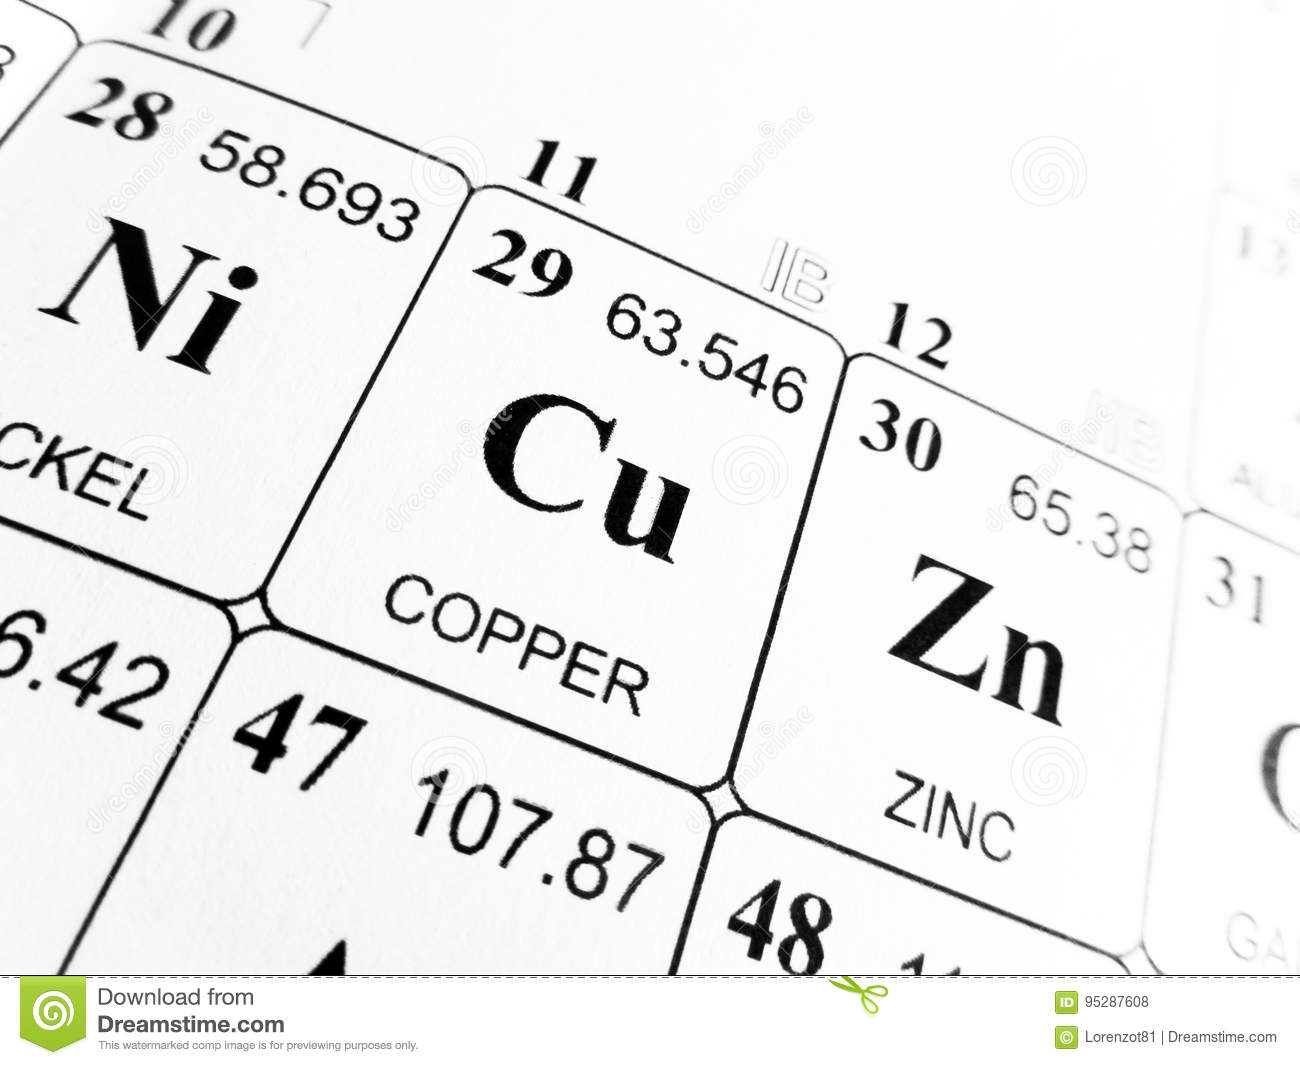 Copper on the periodic table of the elements stock photo image copper periodic table telecomunications gamestrikefo Images